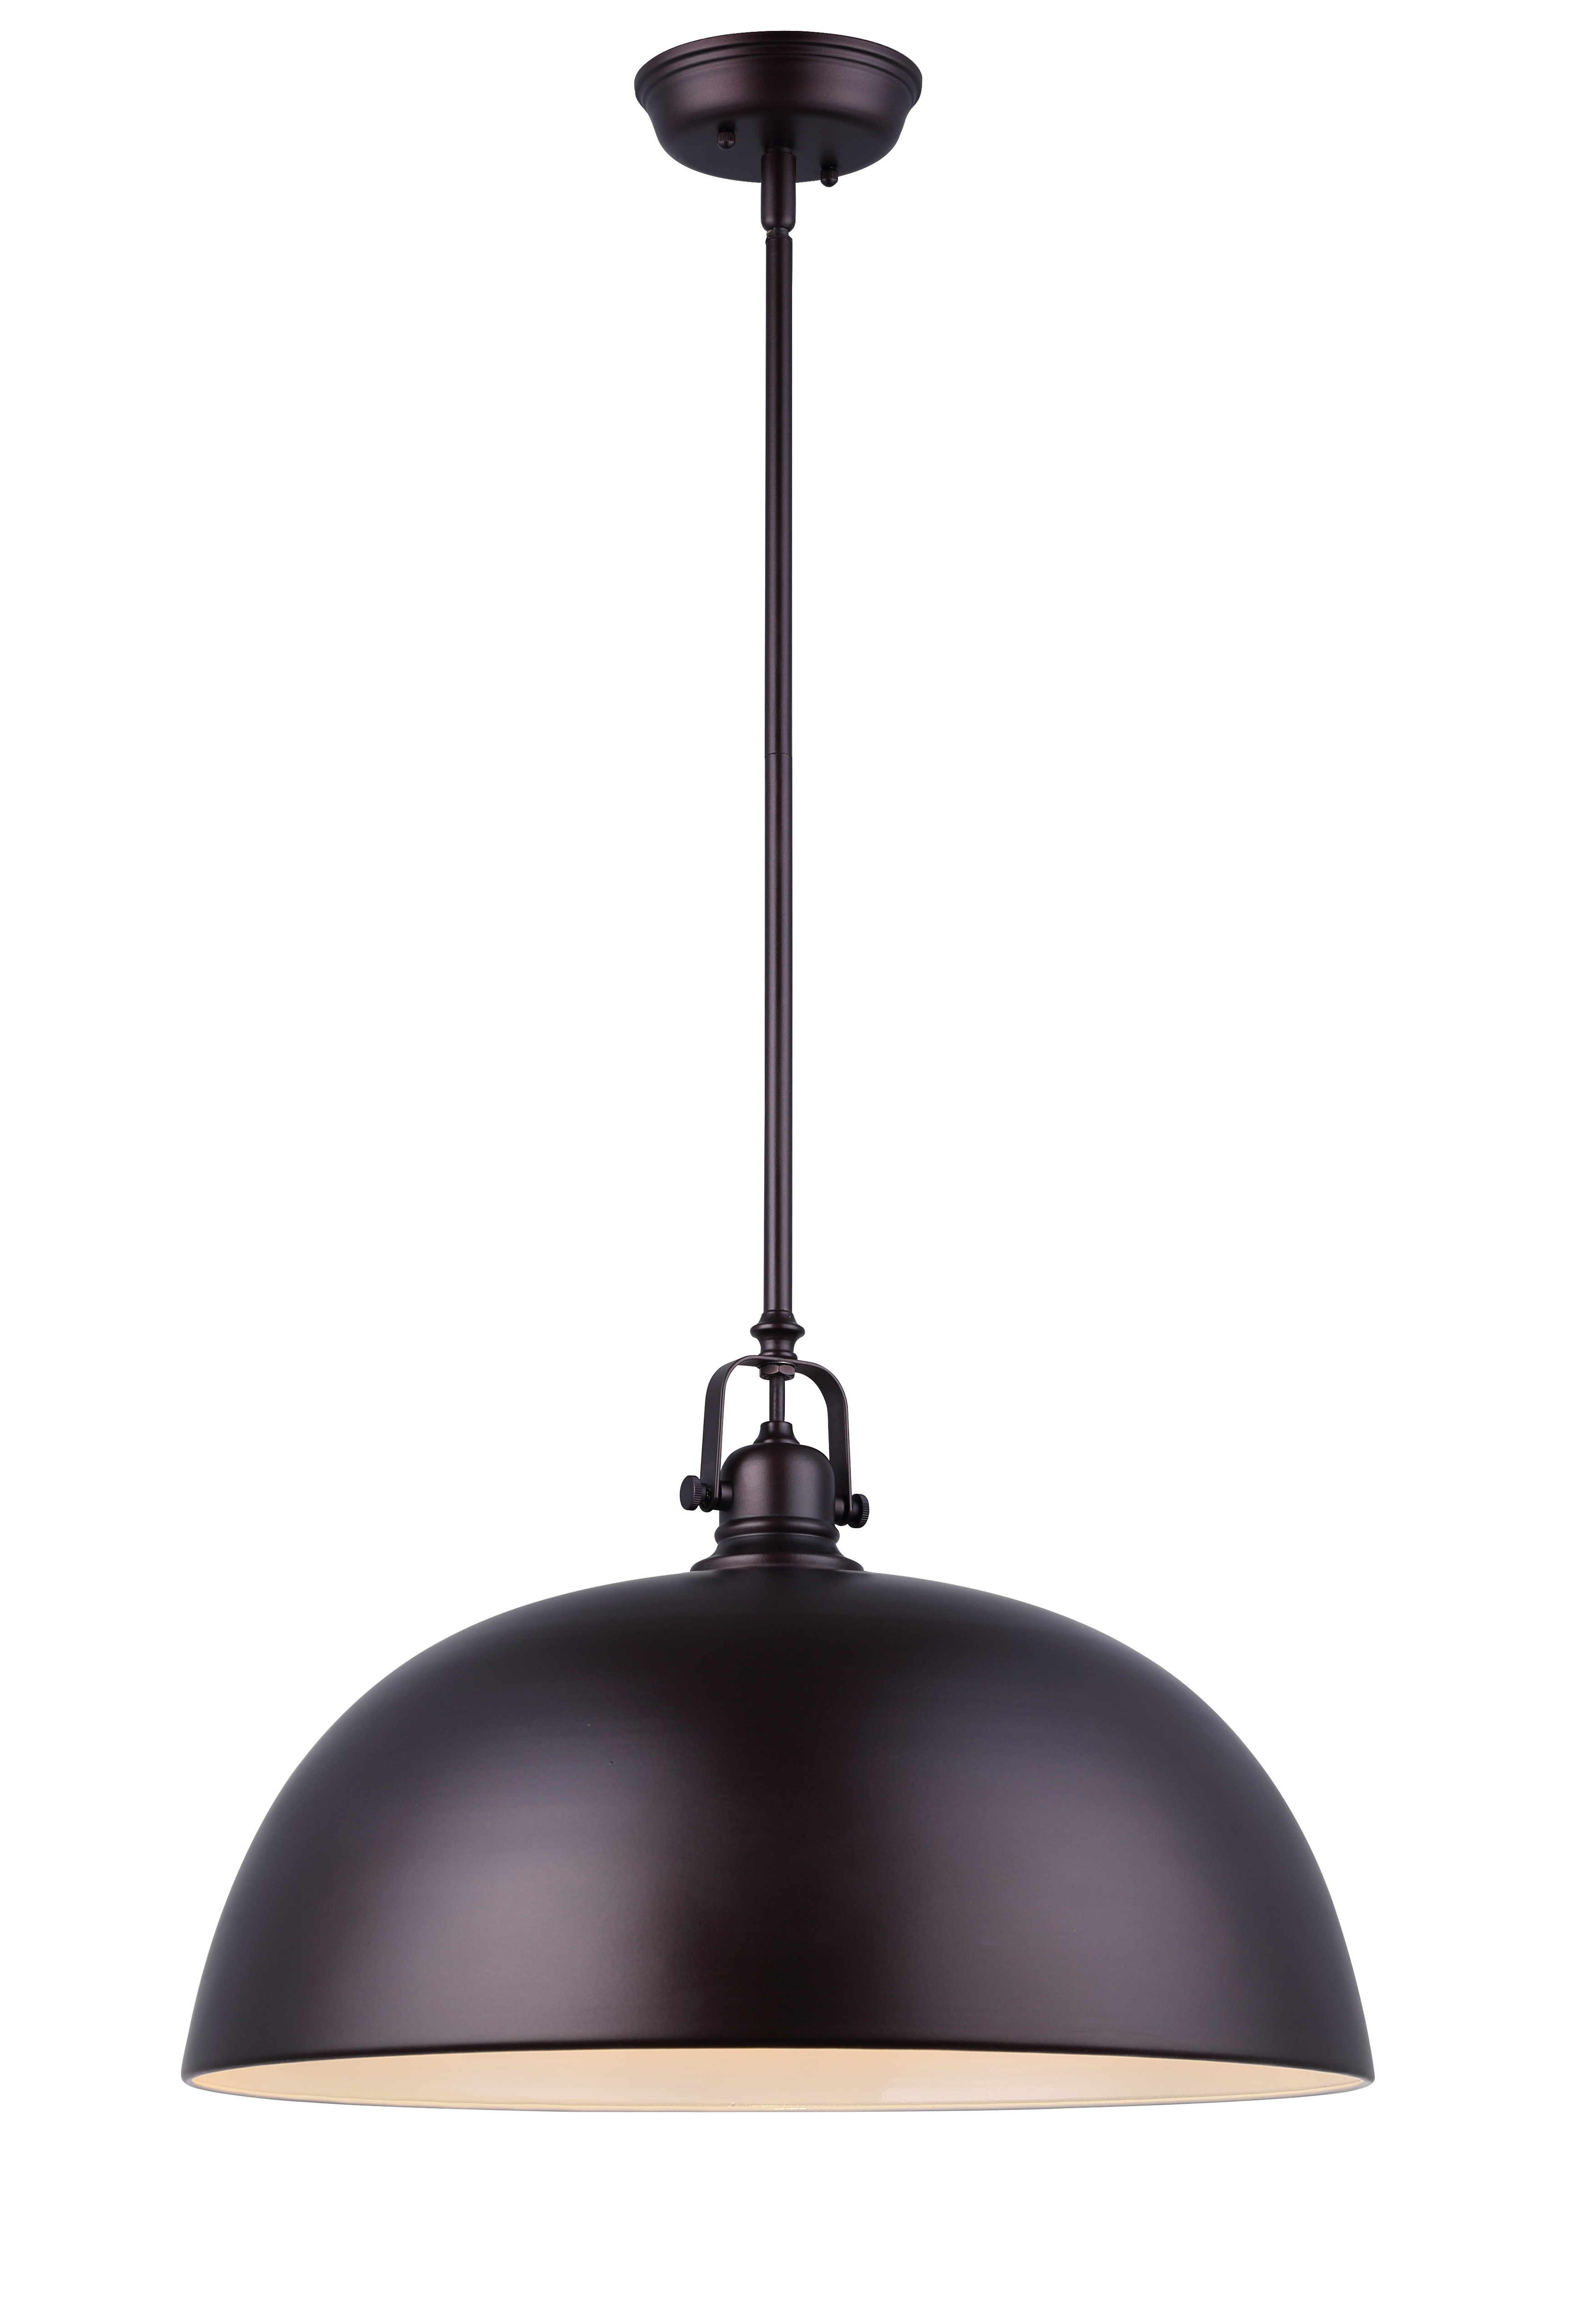 Gattis 1 Light Dome Pendants With Well Liked Southlake 1 Light Single Dome Pendant (View 11 of 25)